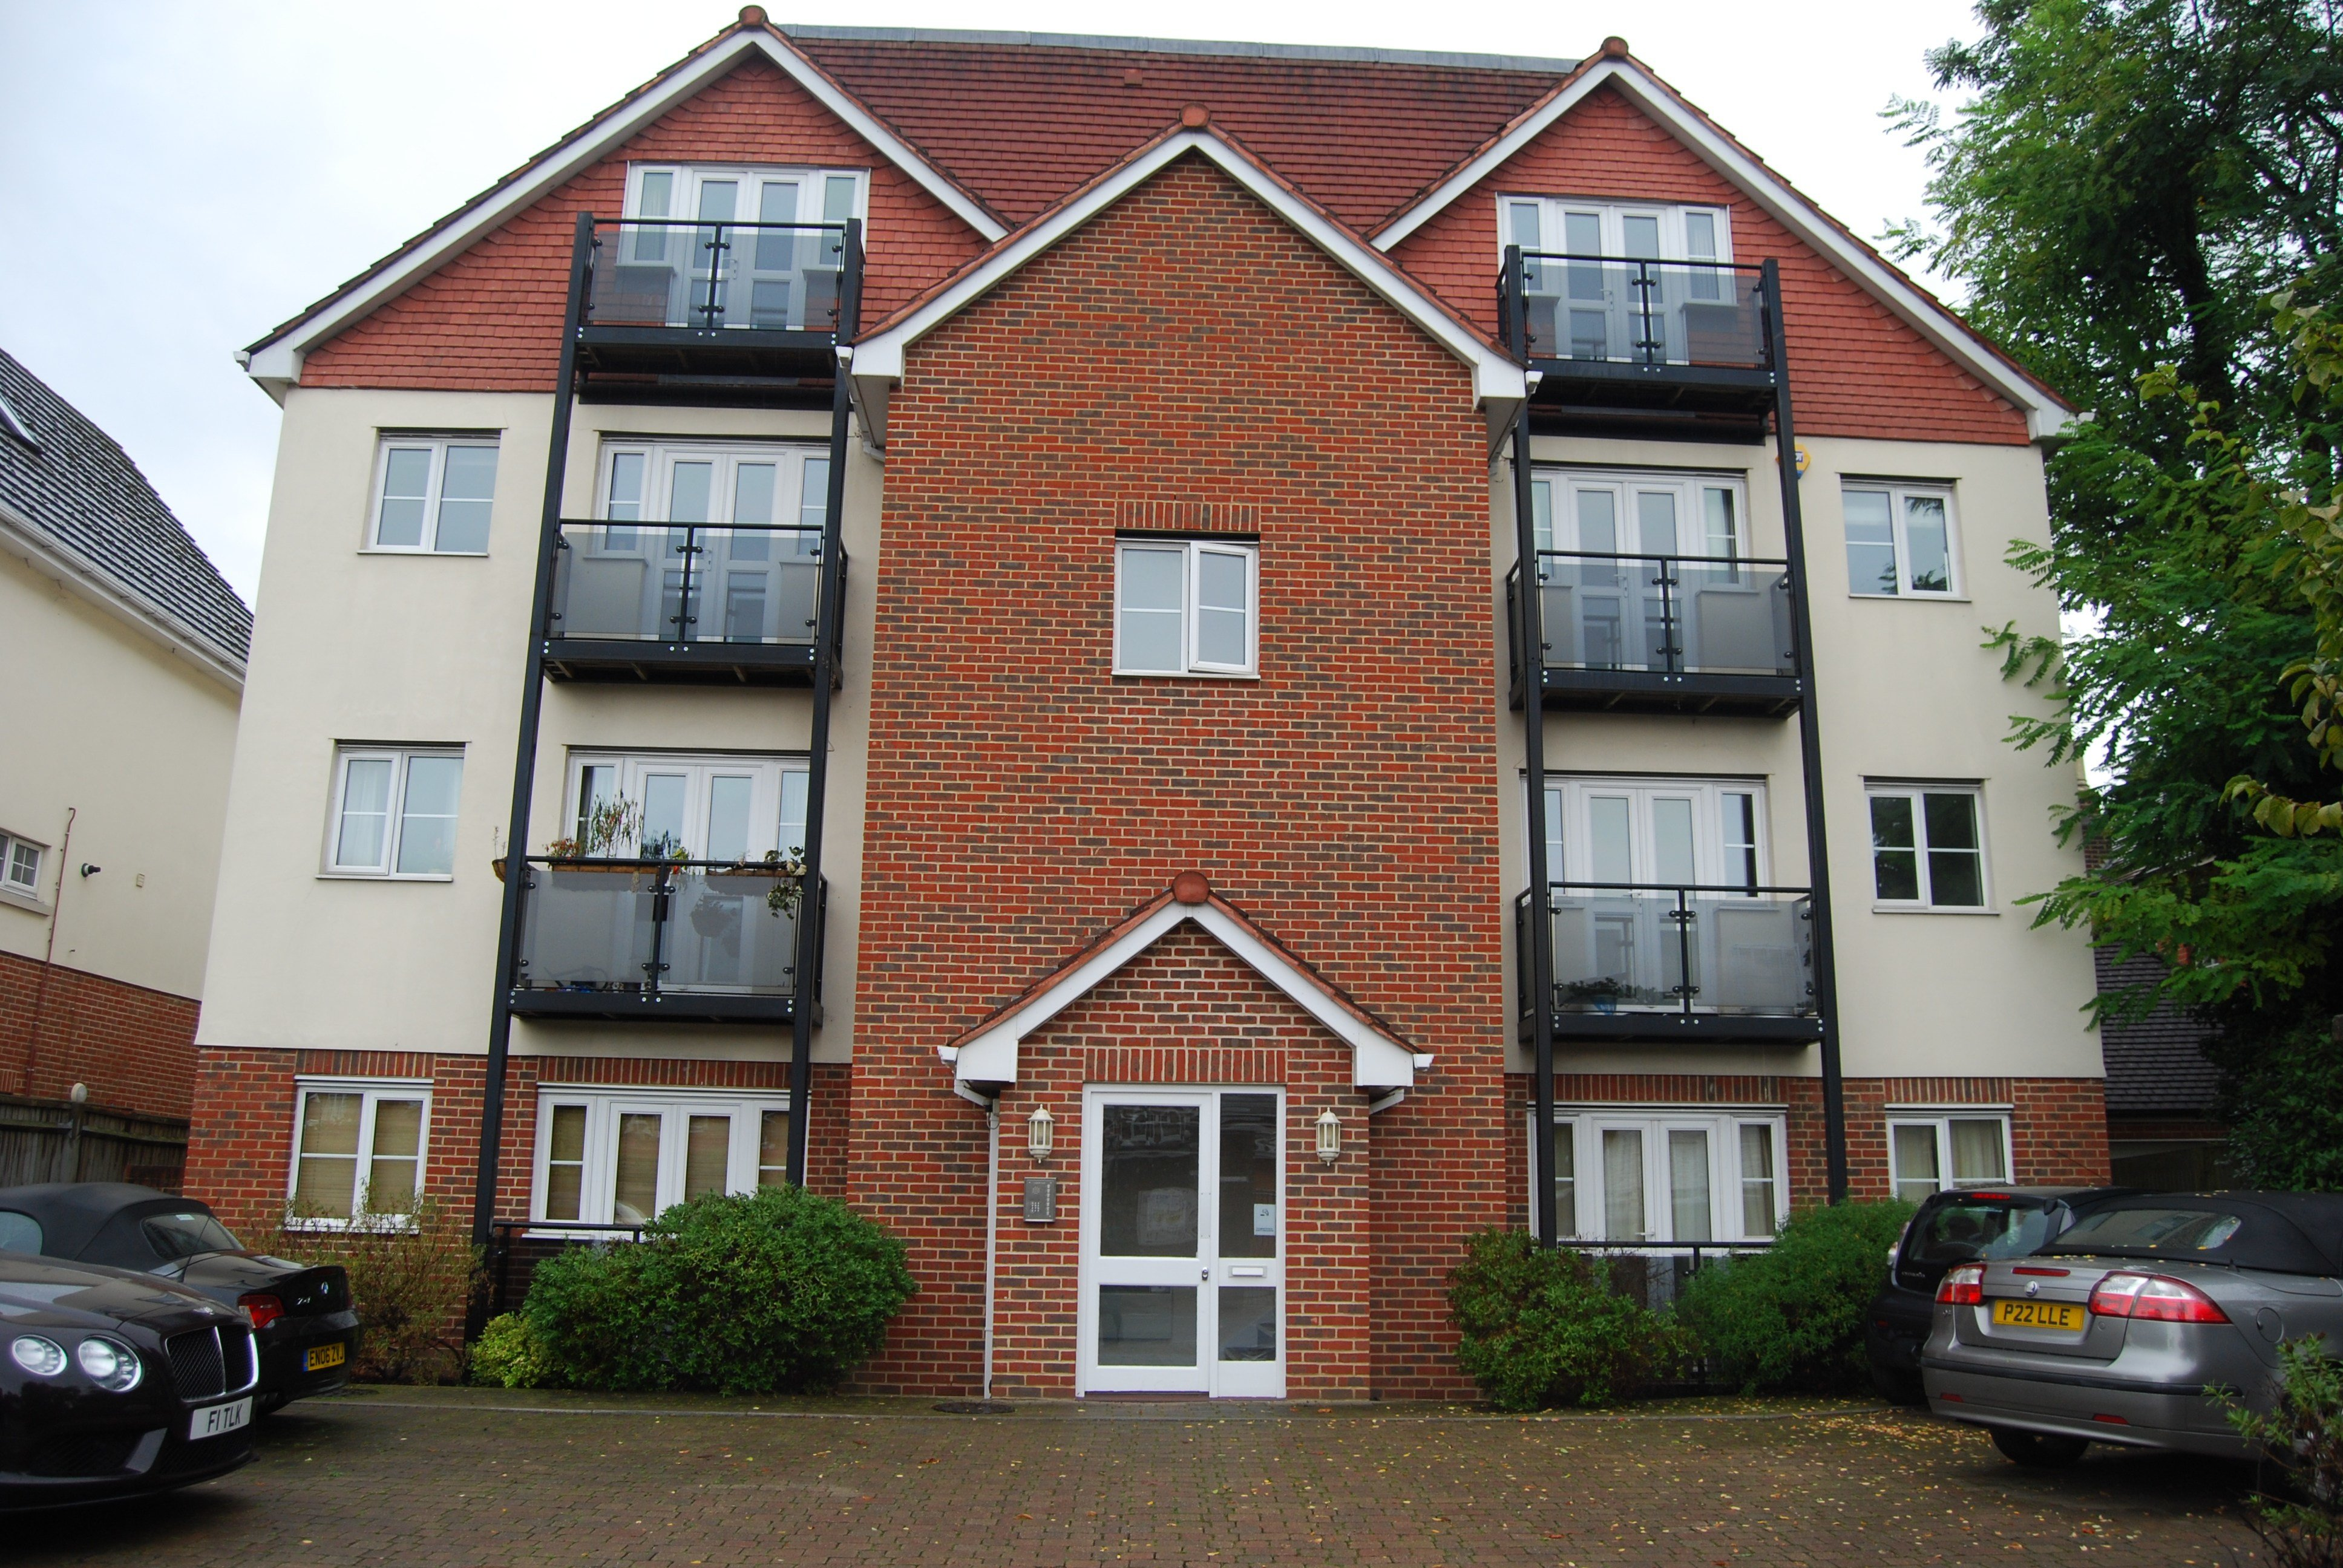 Best 2 Bedroom Flat To Rent Plaistow Lane Bromley Br Br1 3Je With Pictures